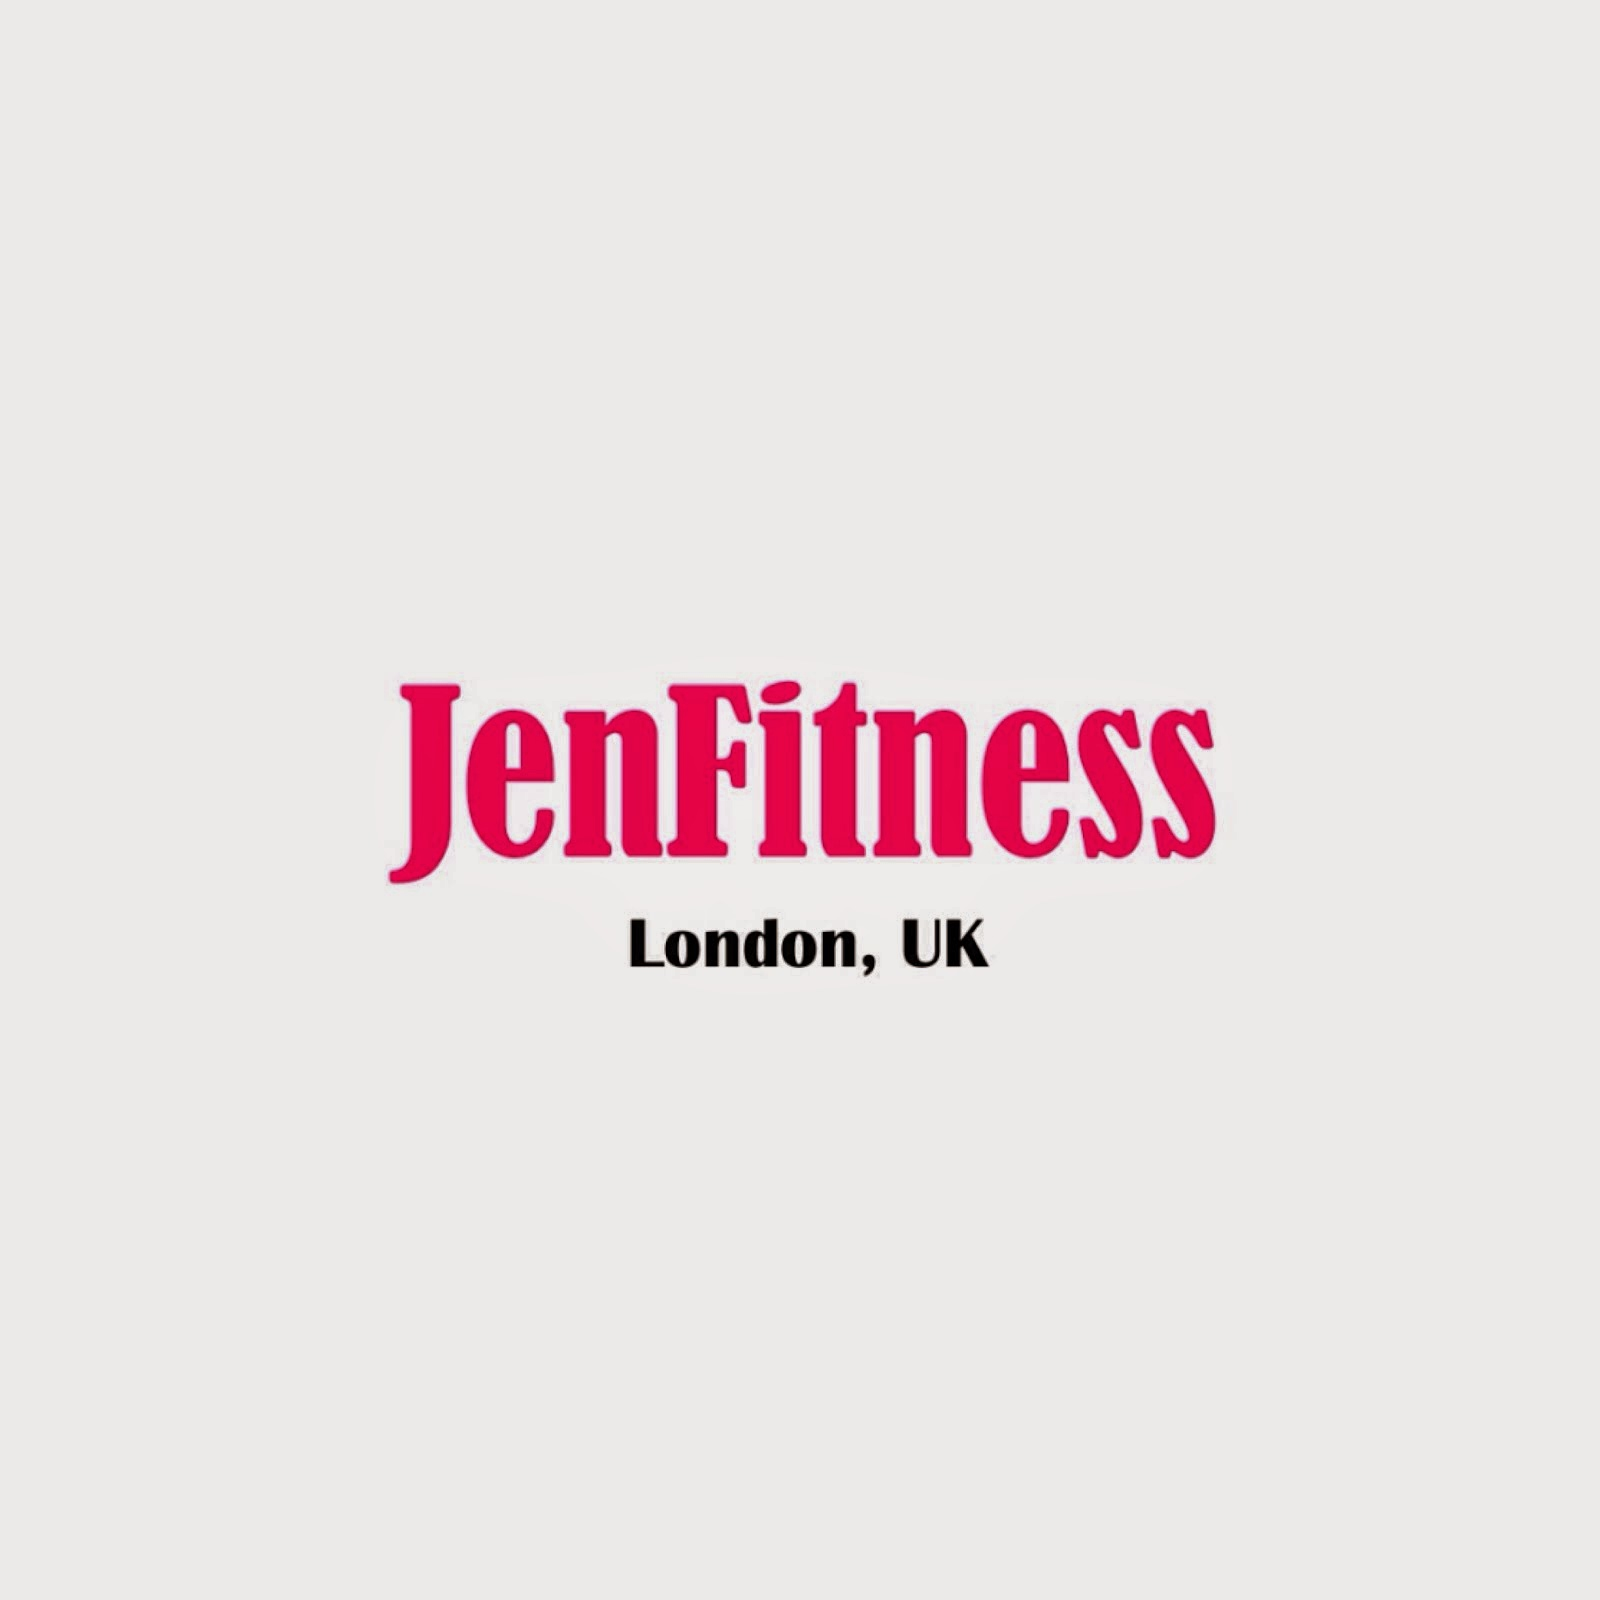 Personal Training in London. Online Training Also Available. Email Me!